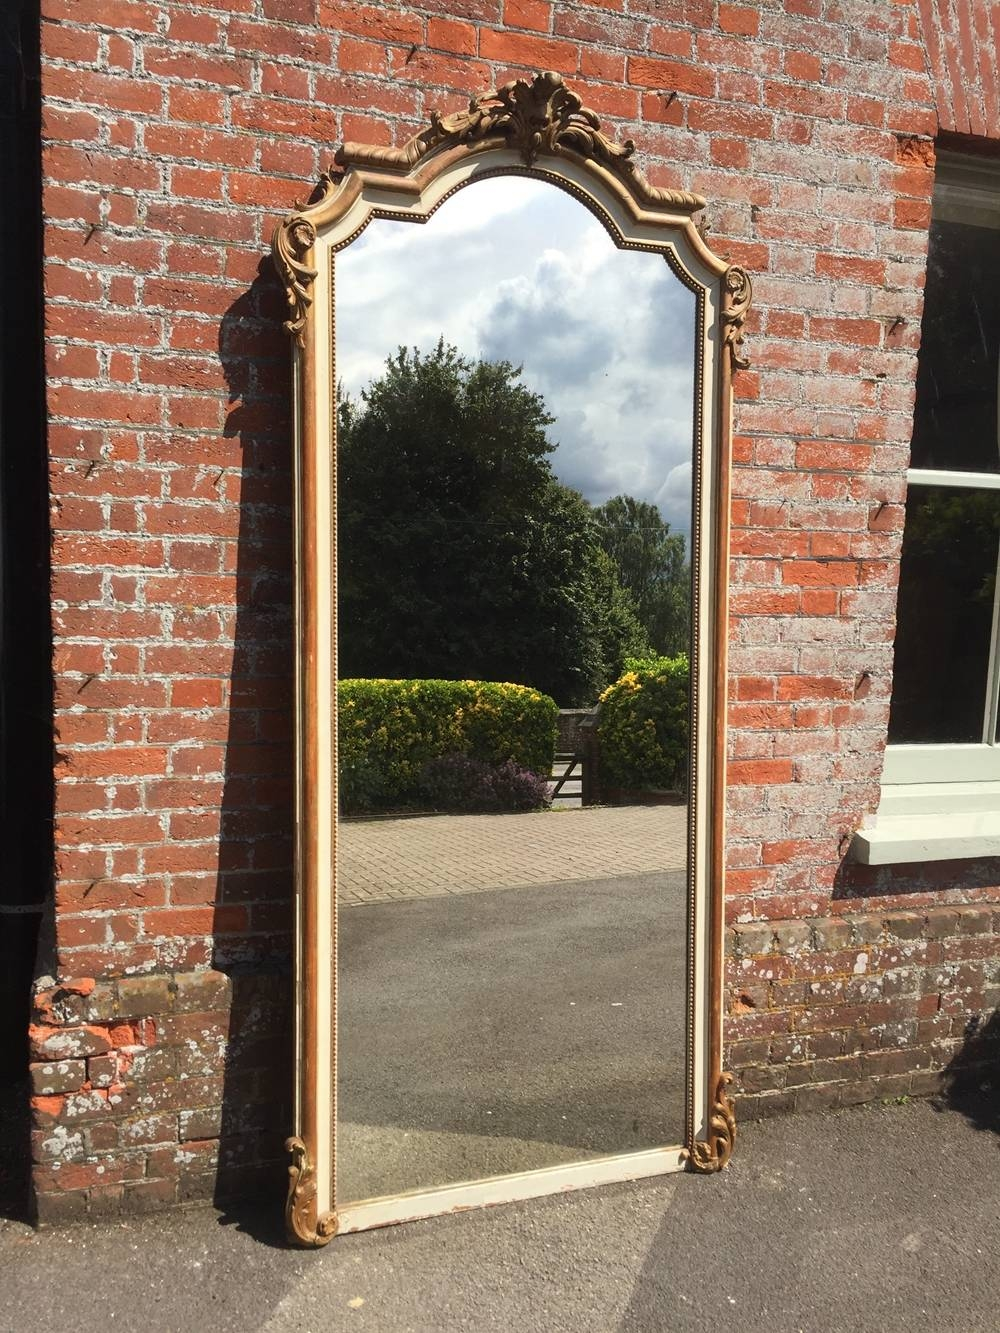 A Superb Large Antique 19Th French Carved Wood & Gesso Original throughout Cream Antique Mirrors (Image 7 of 25)